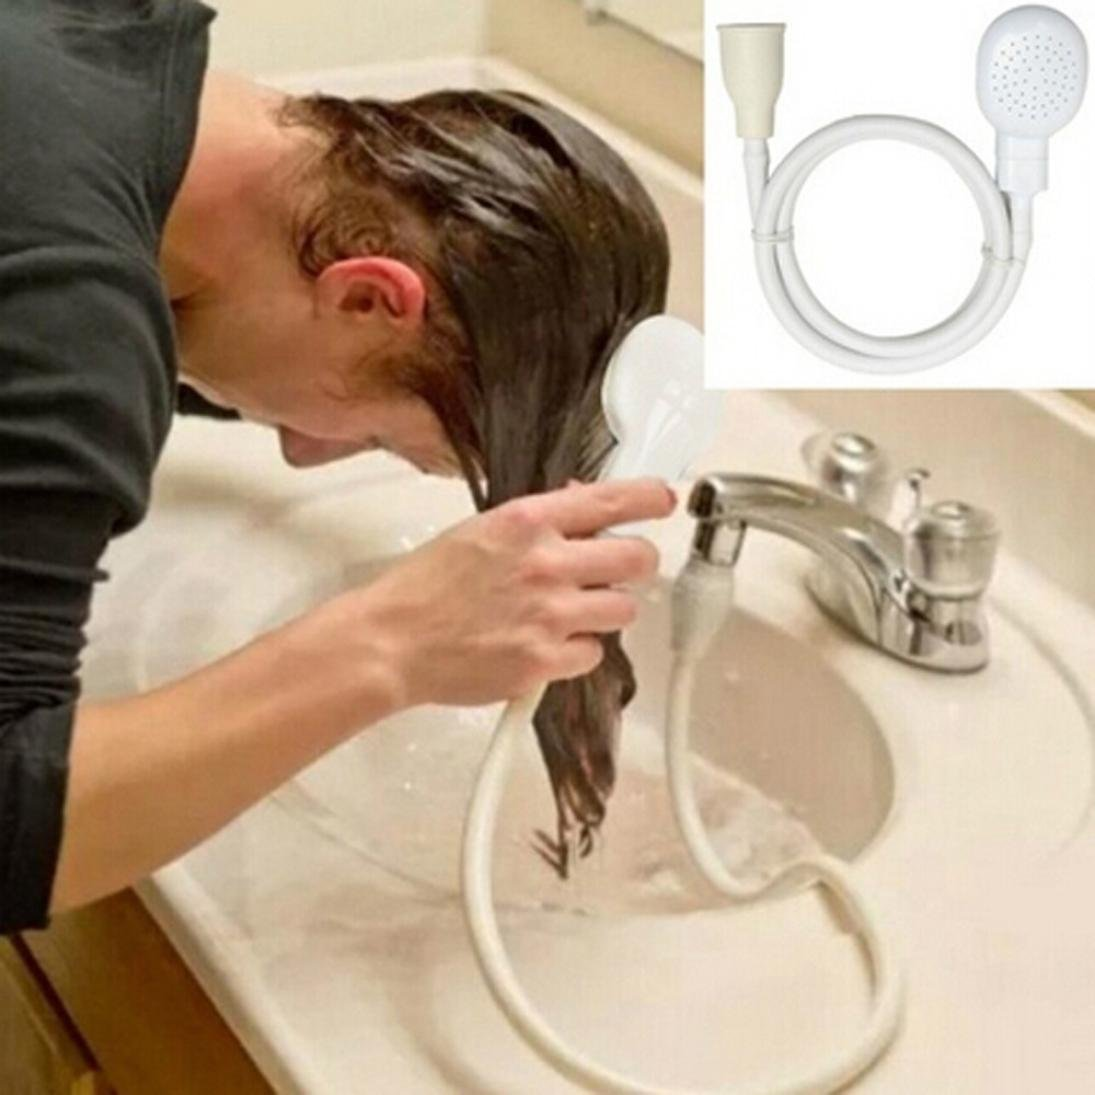 Mostsola Faucet-to-Shower Converter Hair Wash Shower Dog Shower Handheld Showerhead with 1.1-Meter or 43-Inch Hose, White Mostsola888